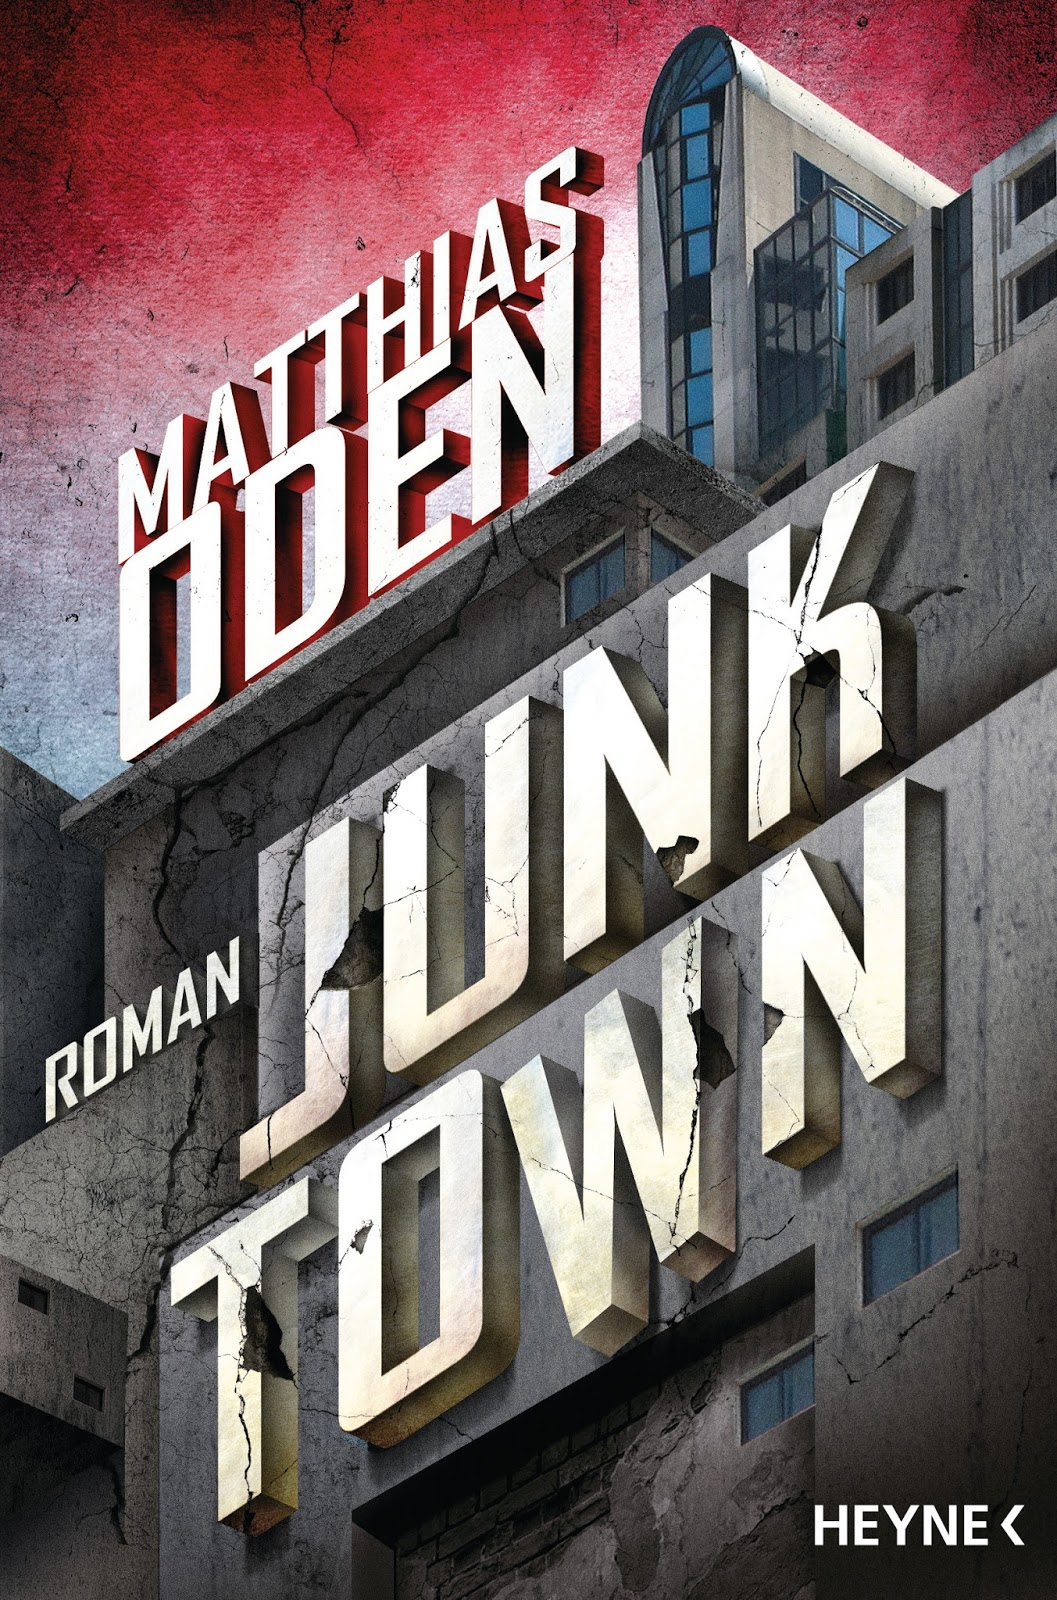 Junktown (Rezension) | Die Seilerseite.